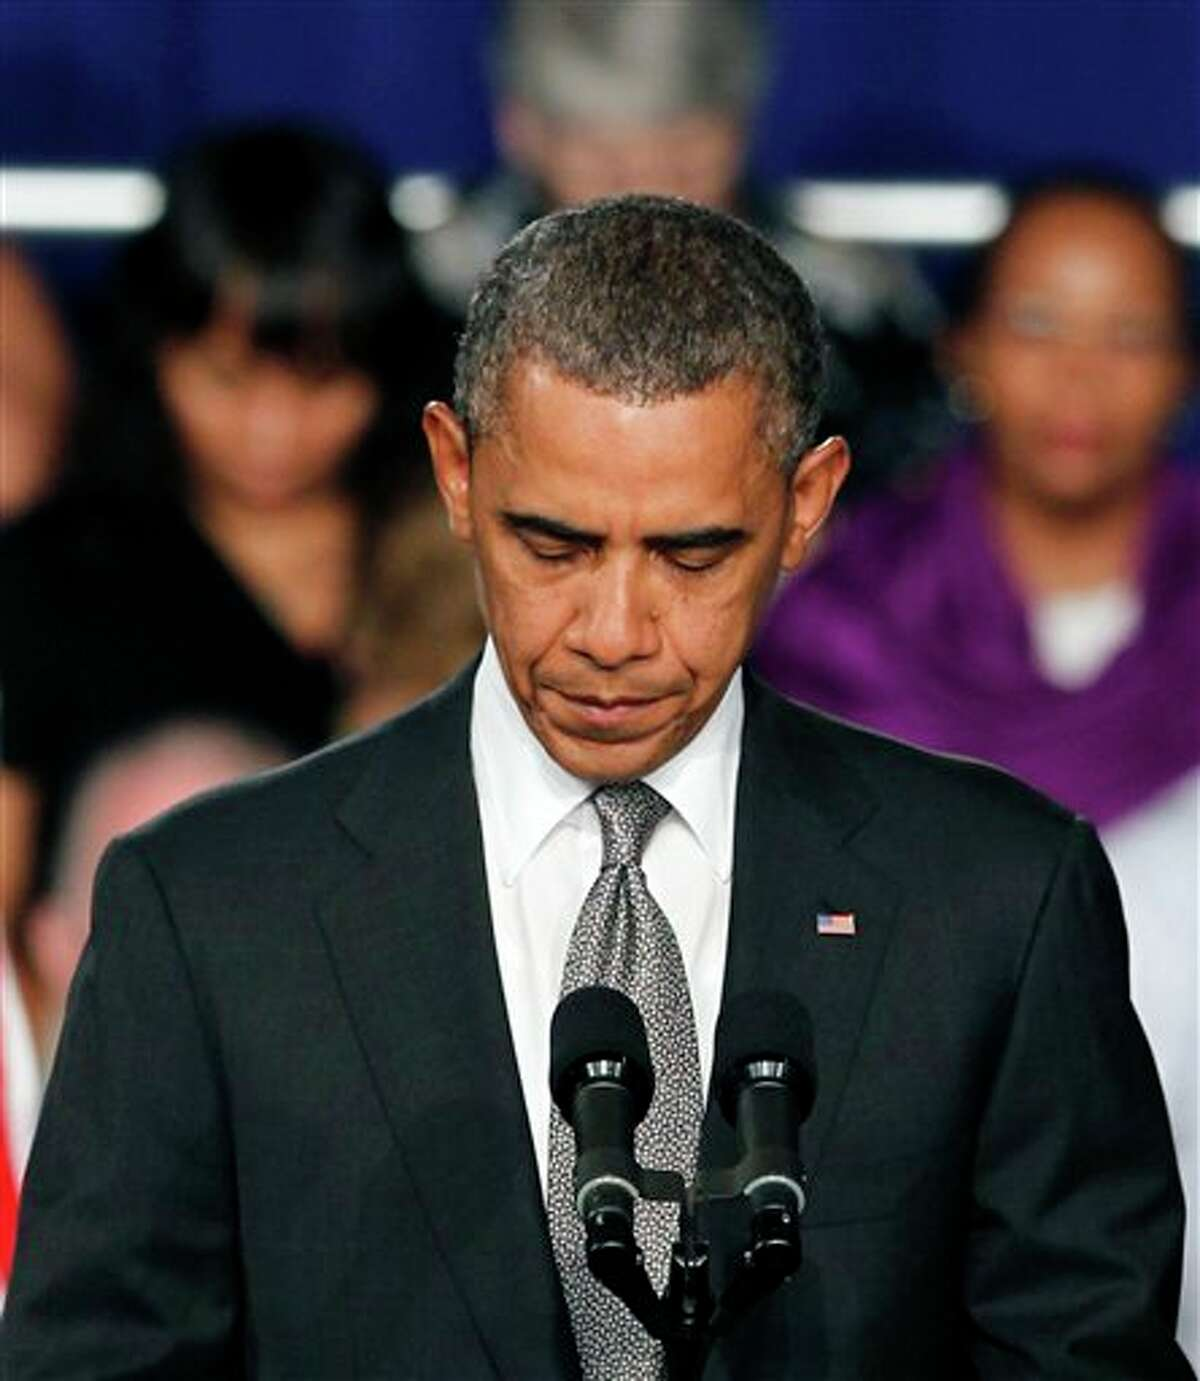 President Barack Obama takes a moment of silence for the events in Colorado at a campaign stop in Fort Myers, Fla., Friday, July 19, 2012. Obama, who was scheduled to spend the day campaigning in Florida, canceled his campaign events to return to Washington to monitor the shooting aftermath. (AP Photo/Alan Diaz)